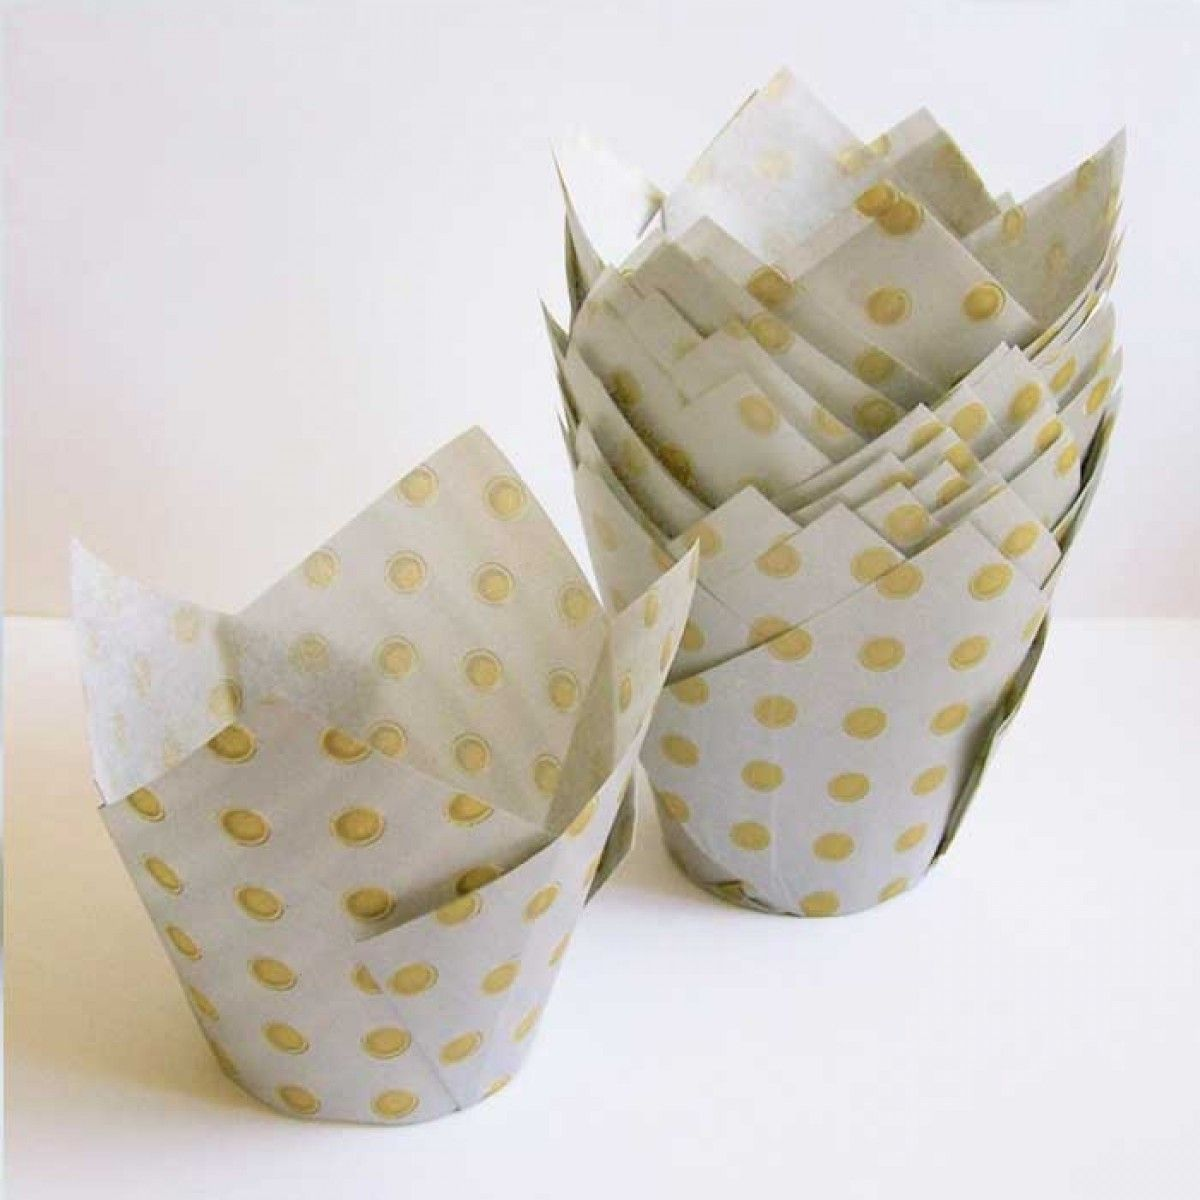 Cupcake Liners Tulip Silver With Gold Polka Dots Gold Polka Dots Gold Cupcakes Cupcake Liners